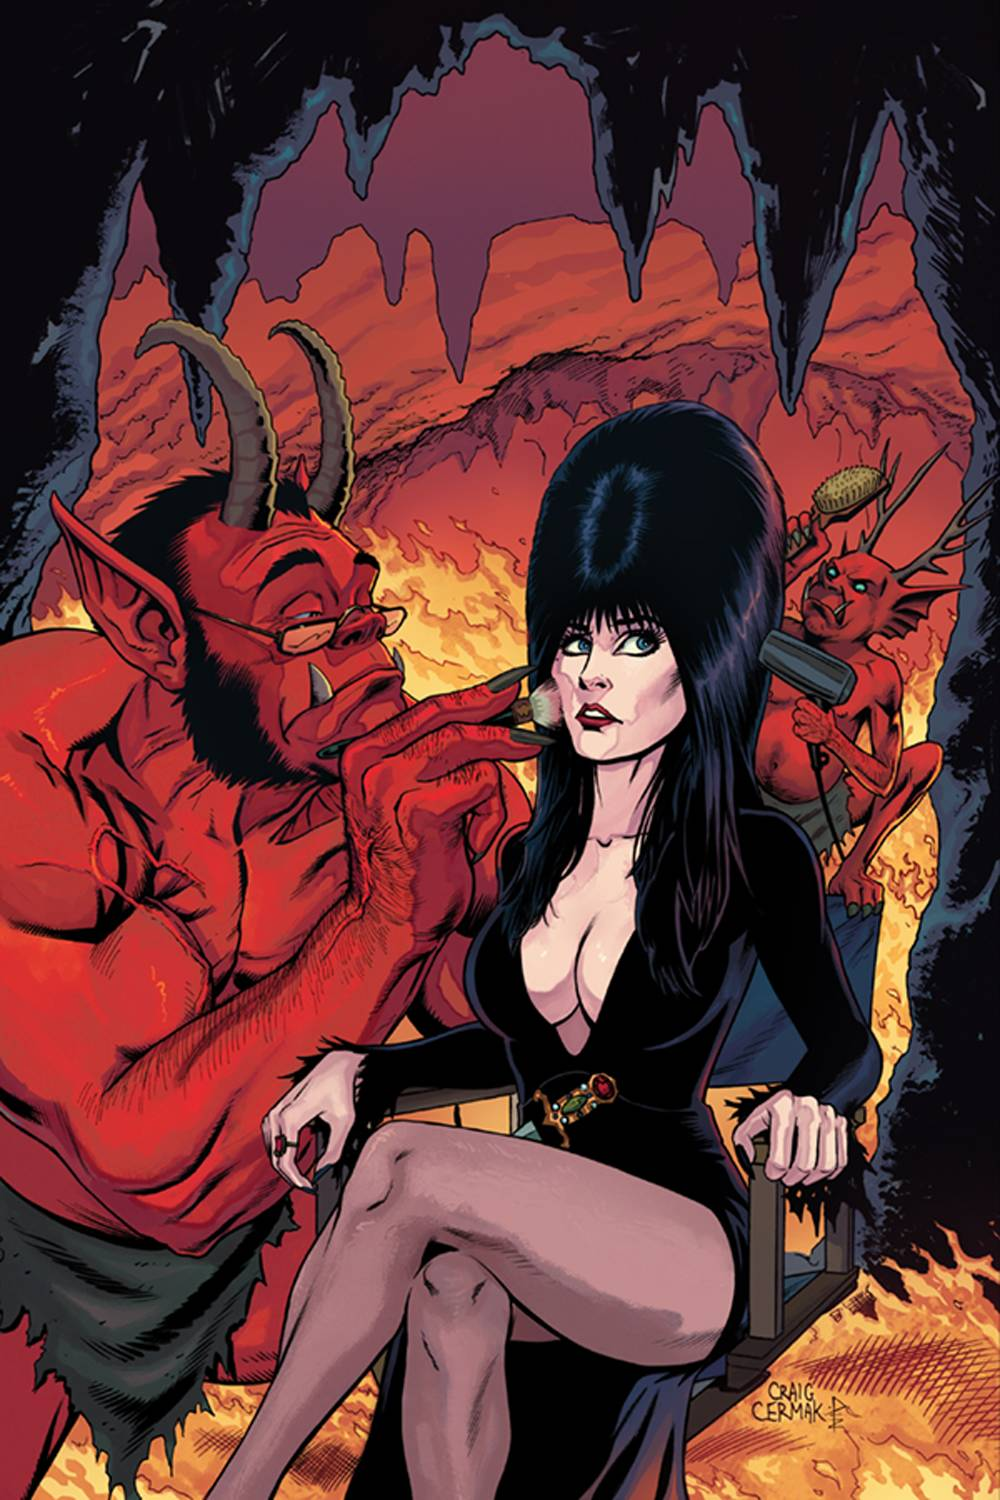 ELVIRA MISTRESS OF DARK 5 10 COPY CERMAK VIRGIN INCV.jpg